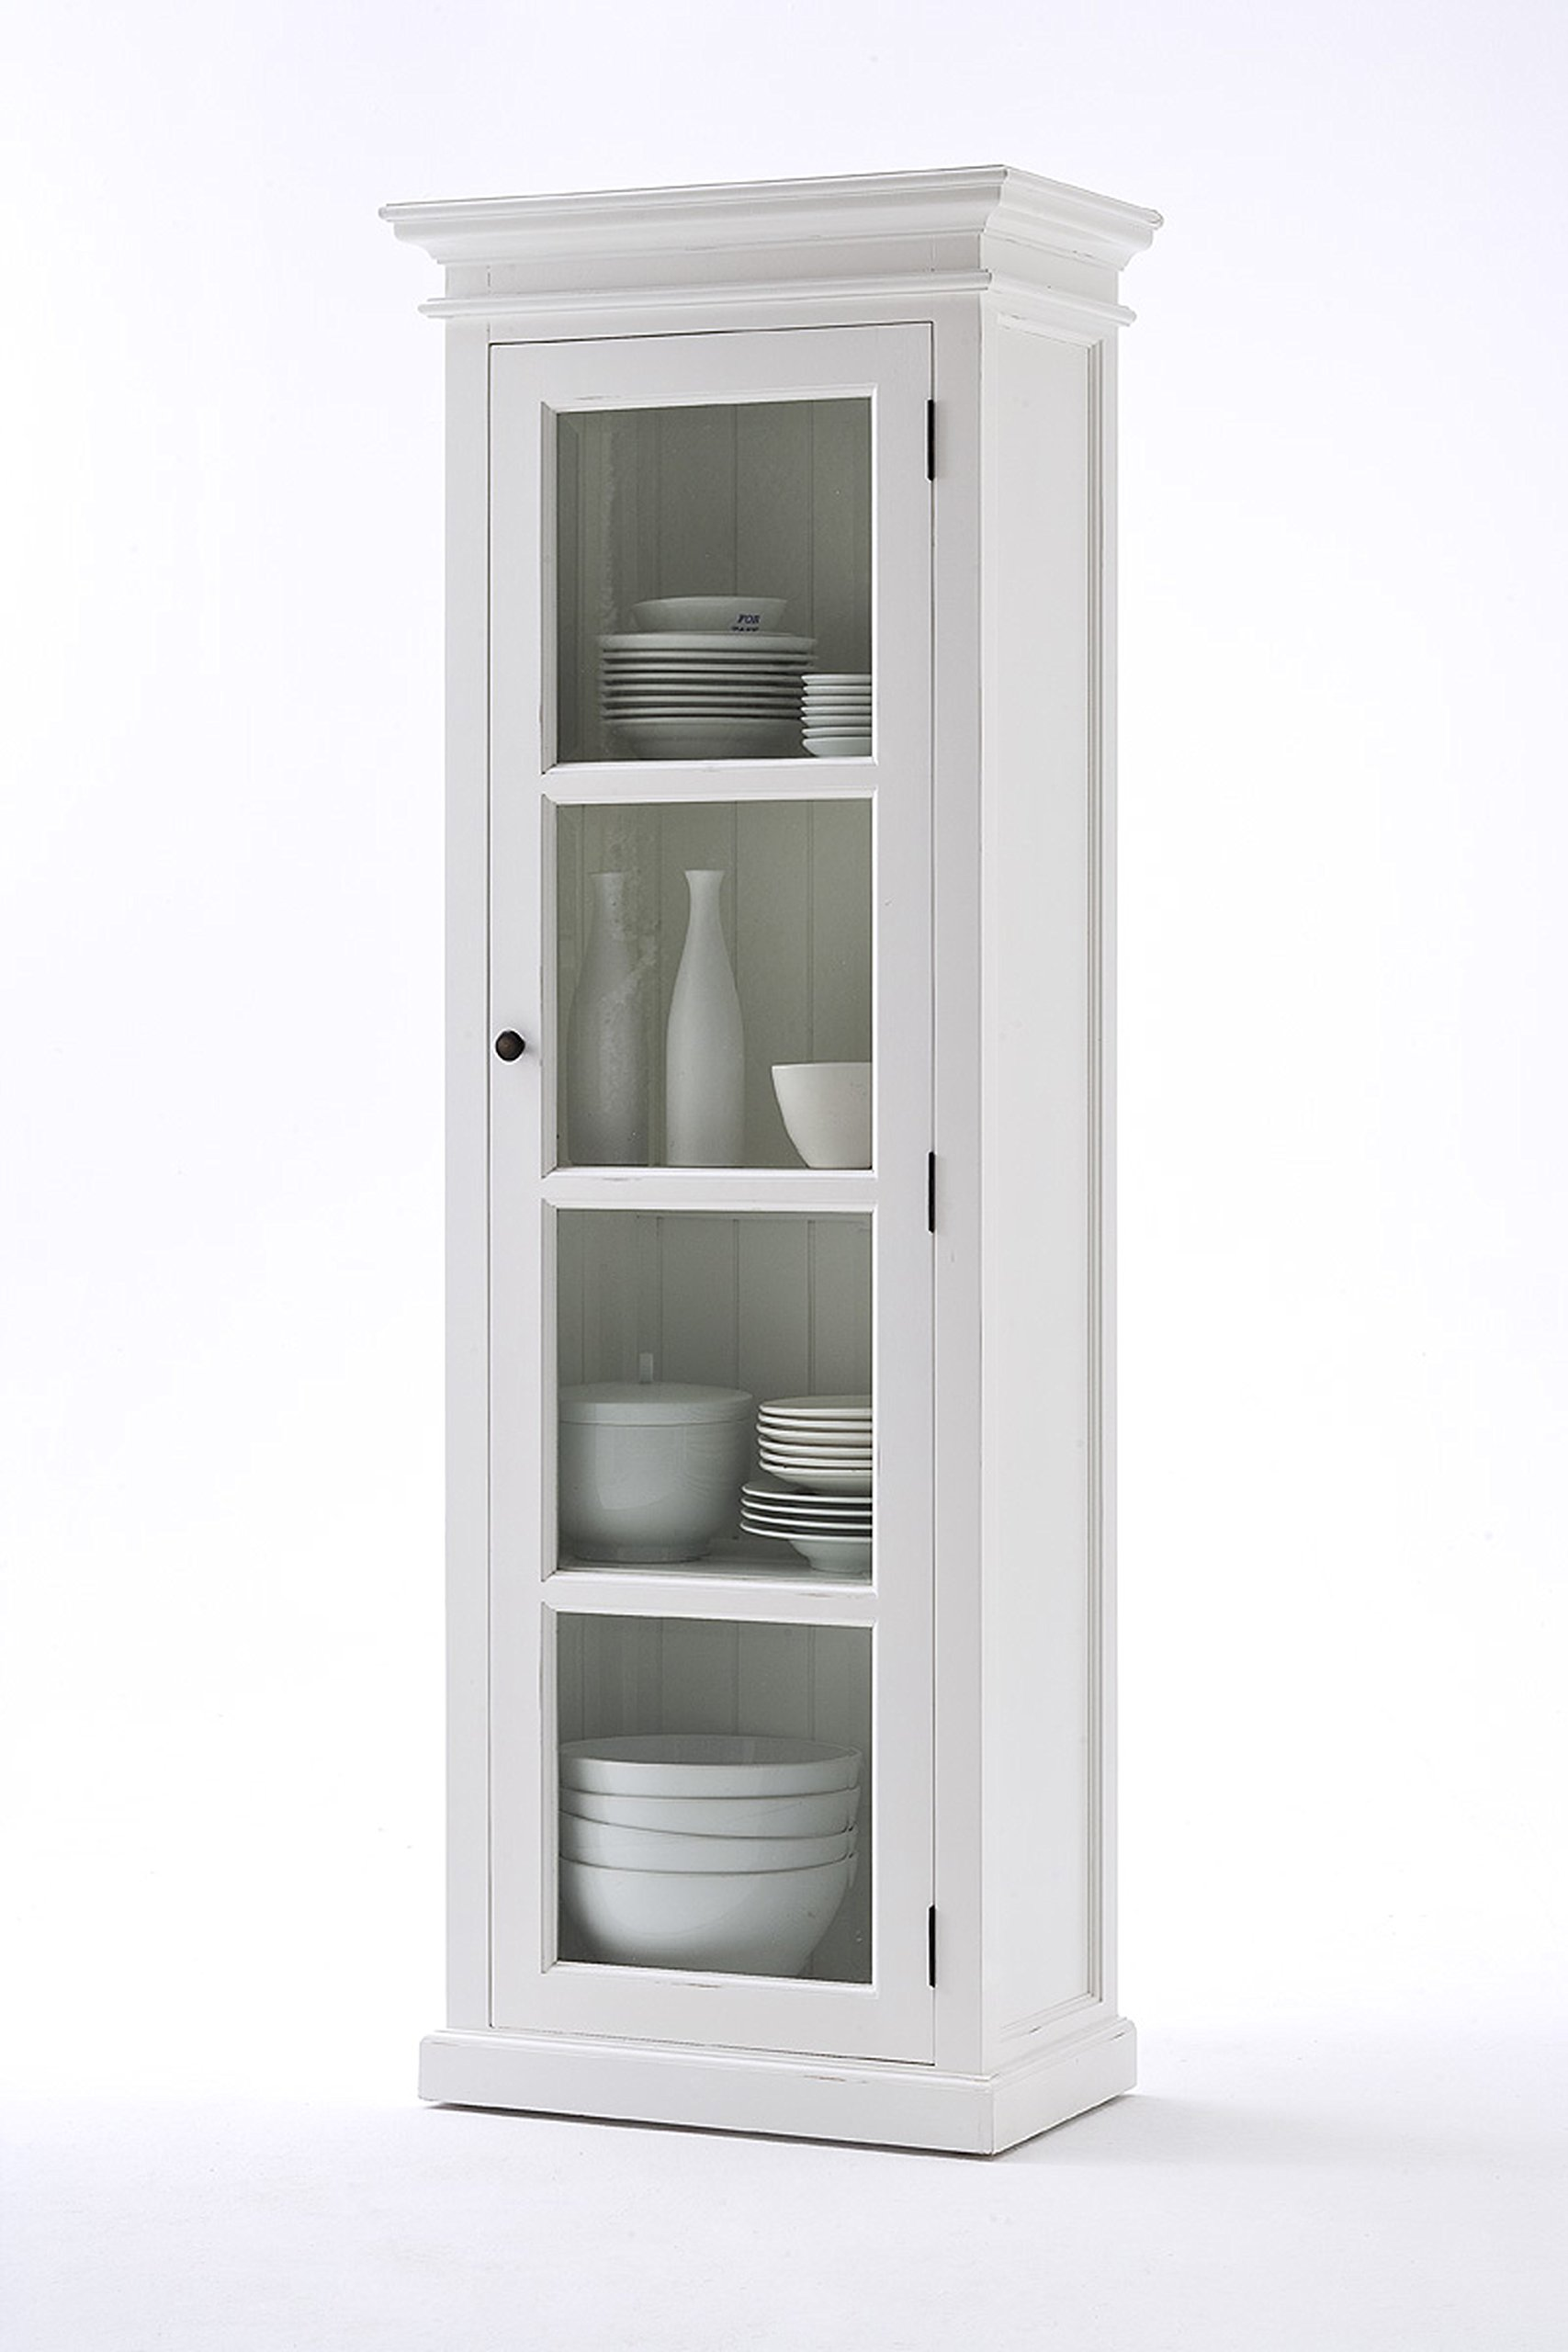 NovaSolo Halifax Pure White Mahogany Wood Single Display Stand With Glass Door And 4 Shelves by NovaSolo